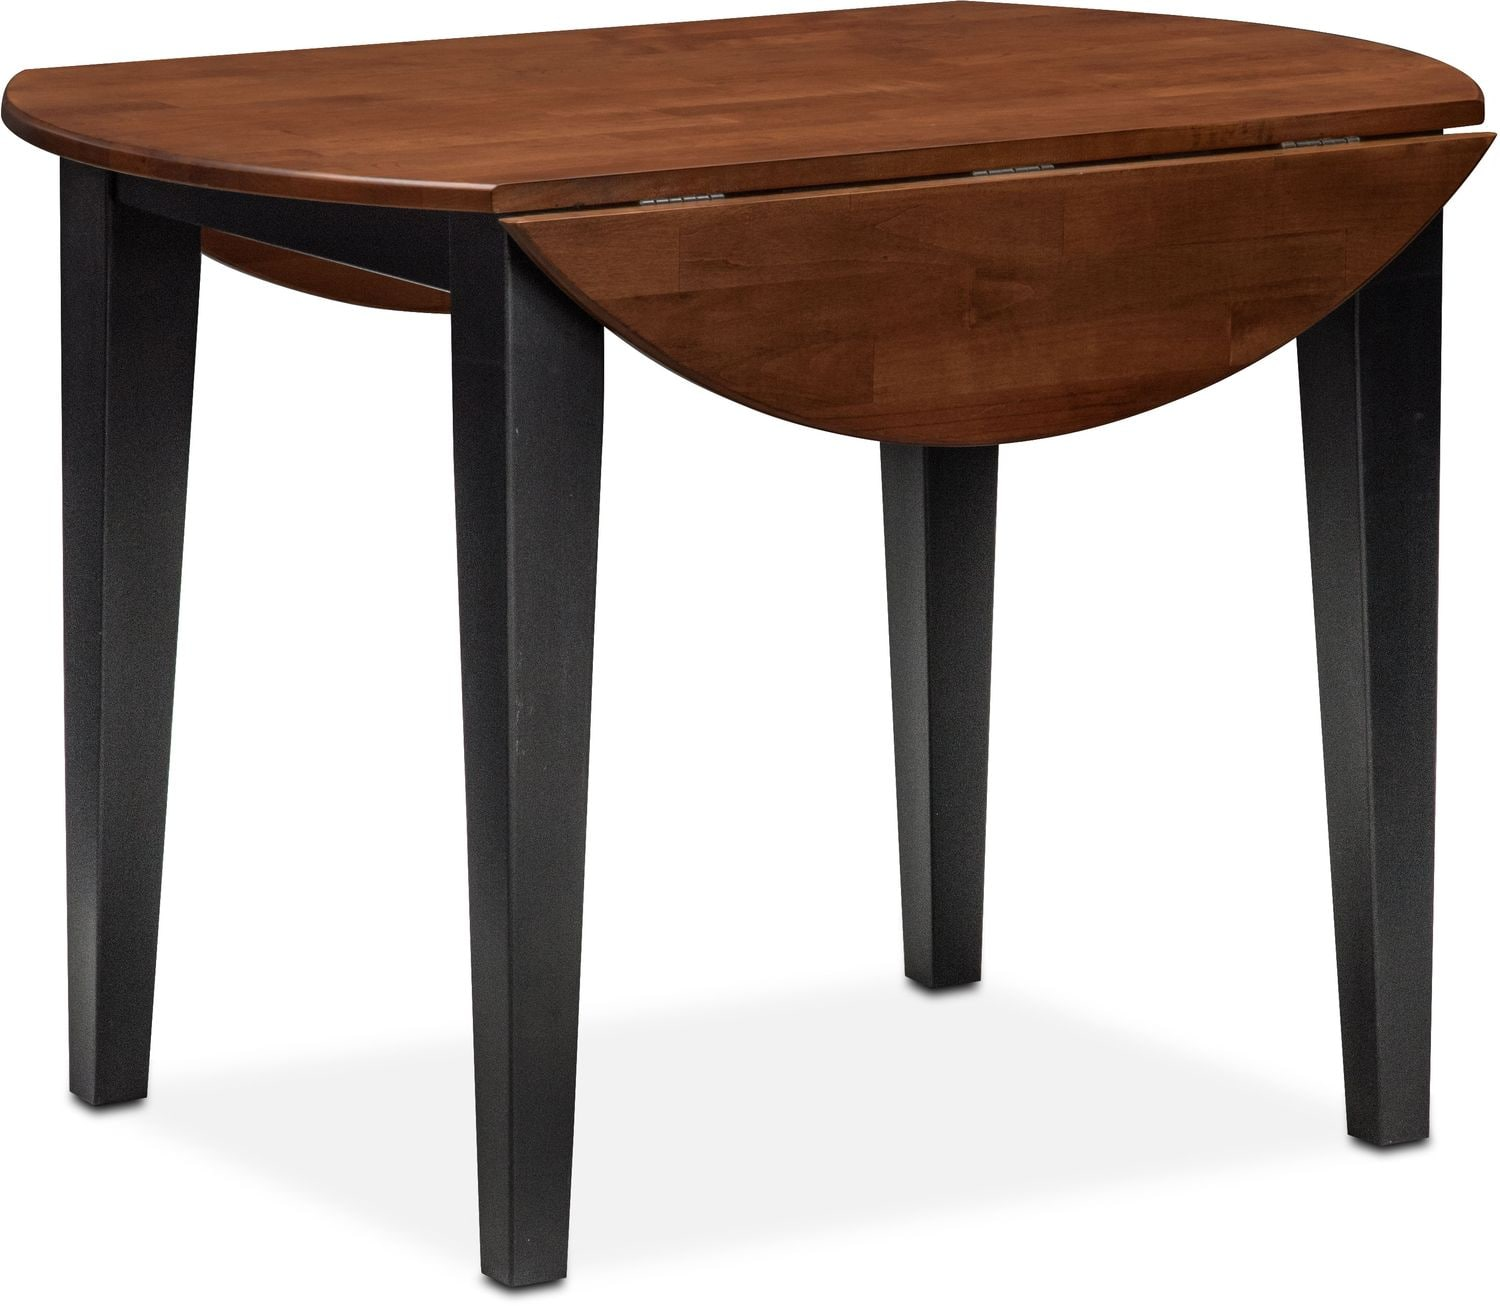 Nantucket DropLeaf Table Black and Cherry Value City Furniture